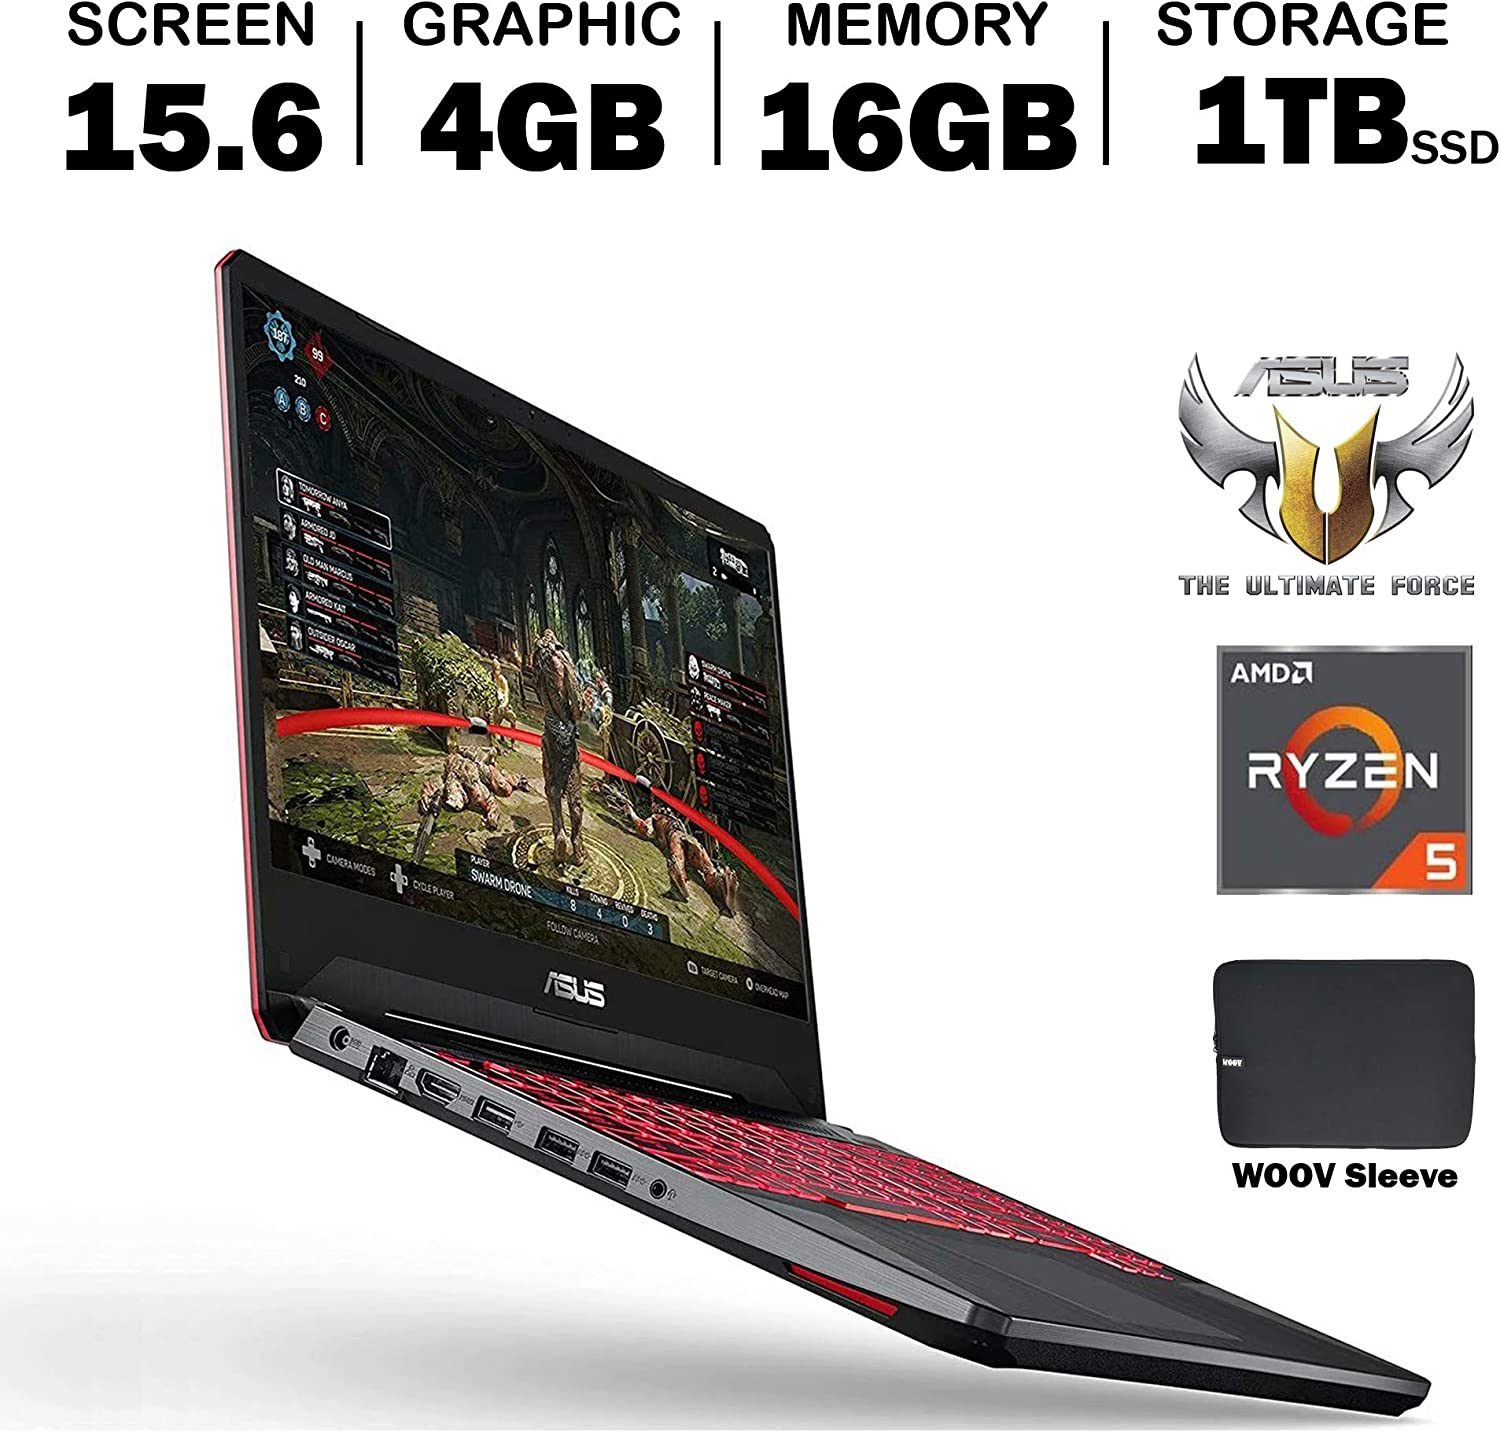 ASUS TUF FX505DT 15.6 Inch Full HD IPS Gaming Laptop, GeForce GTX 1650 4GB, AMD Ryzen 5 R5-3550H (Beat i7-7700HQ), 16GB DDR4, 1024GB PCIe SSD, RGB Backlit Keyboard, Windows 10, Woov Sleeve